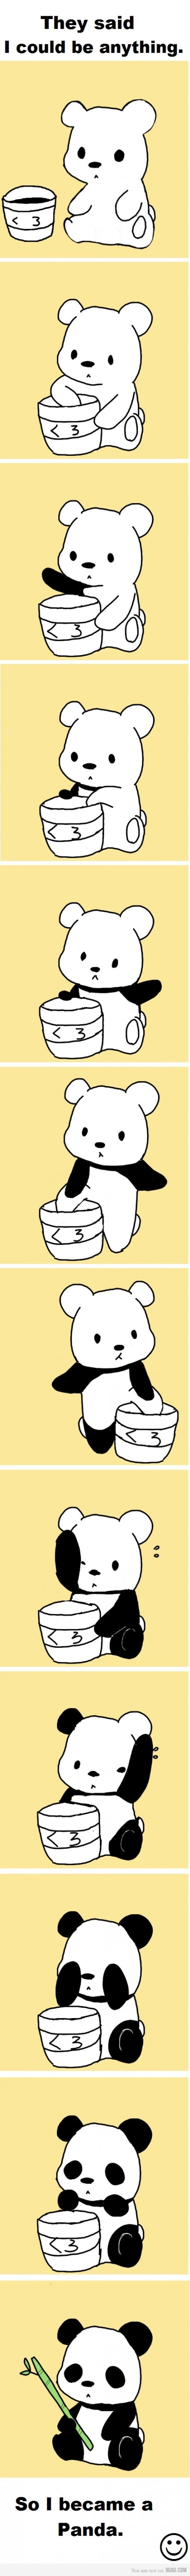 Be like a panda, black, white and asian~! P.S.: Go Against Racism! We're all equal!